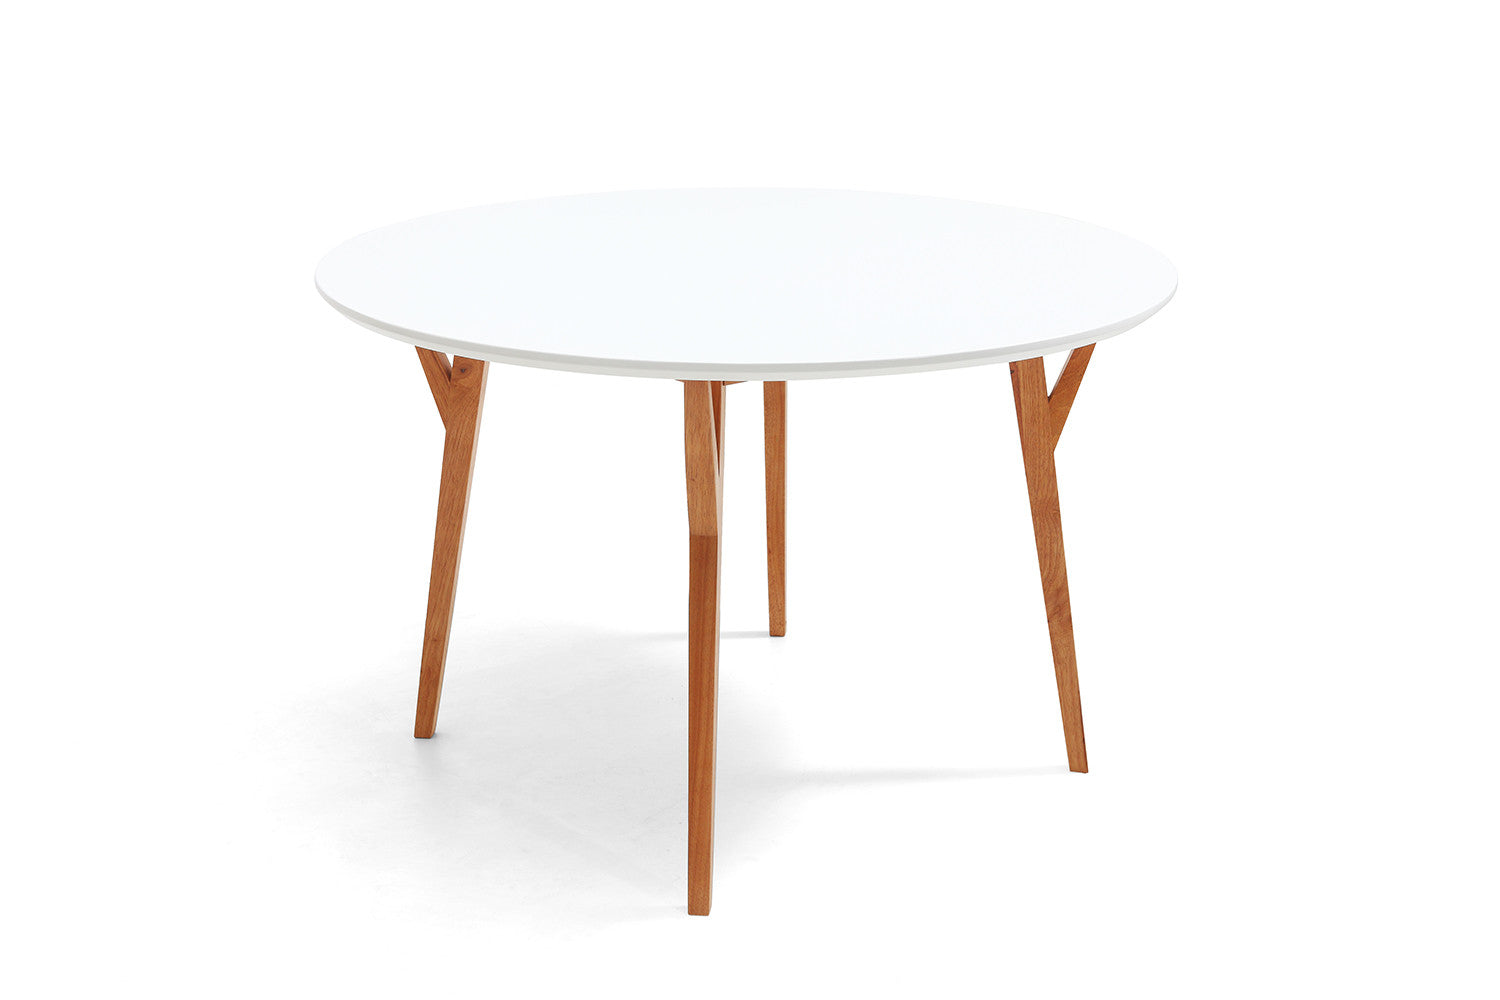 Table de salle manger ronde design scandinave moesa - Solde table salle a manger ...